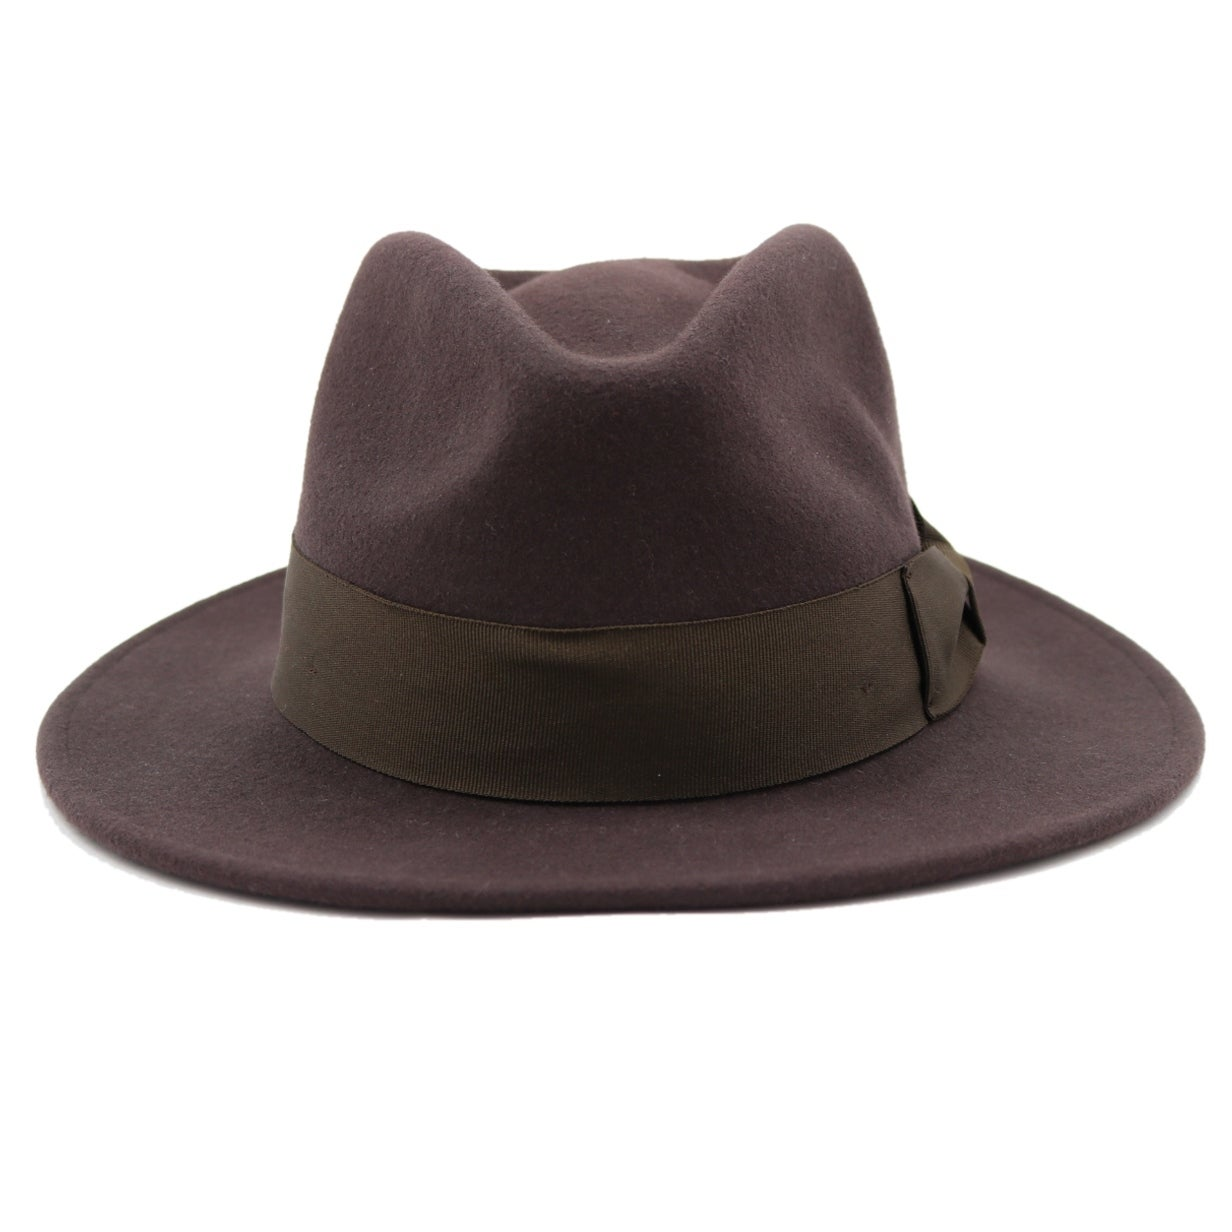 Shop Stefano - 100% Wool Felt Modern-day Stiff Brim Fedora Style Hat - Free  Shipping On Orders Over  45 - Overstock - 20743868 6ad46735c58